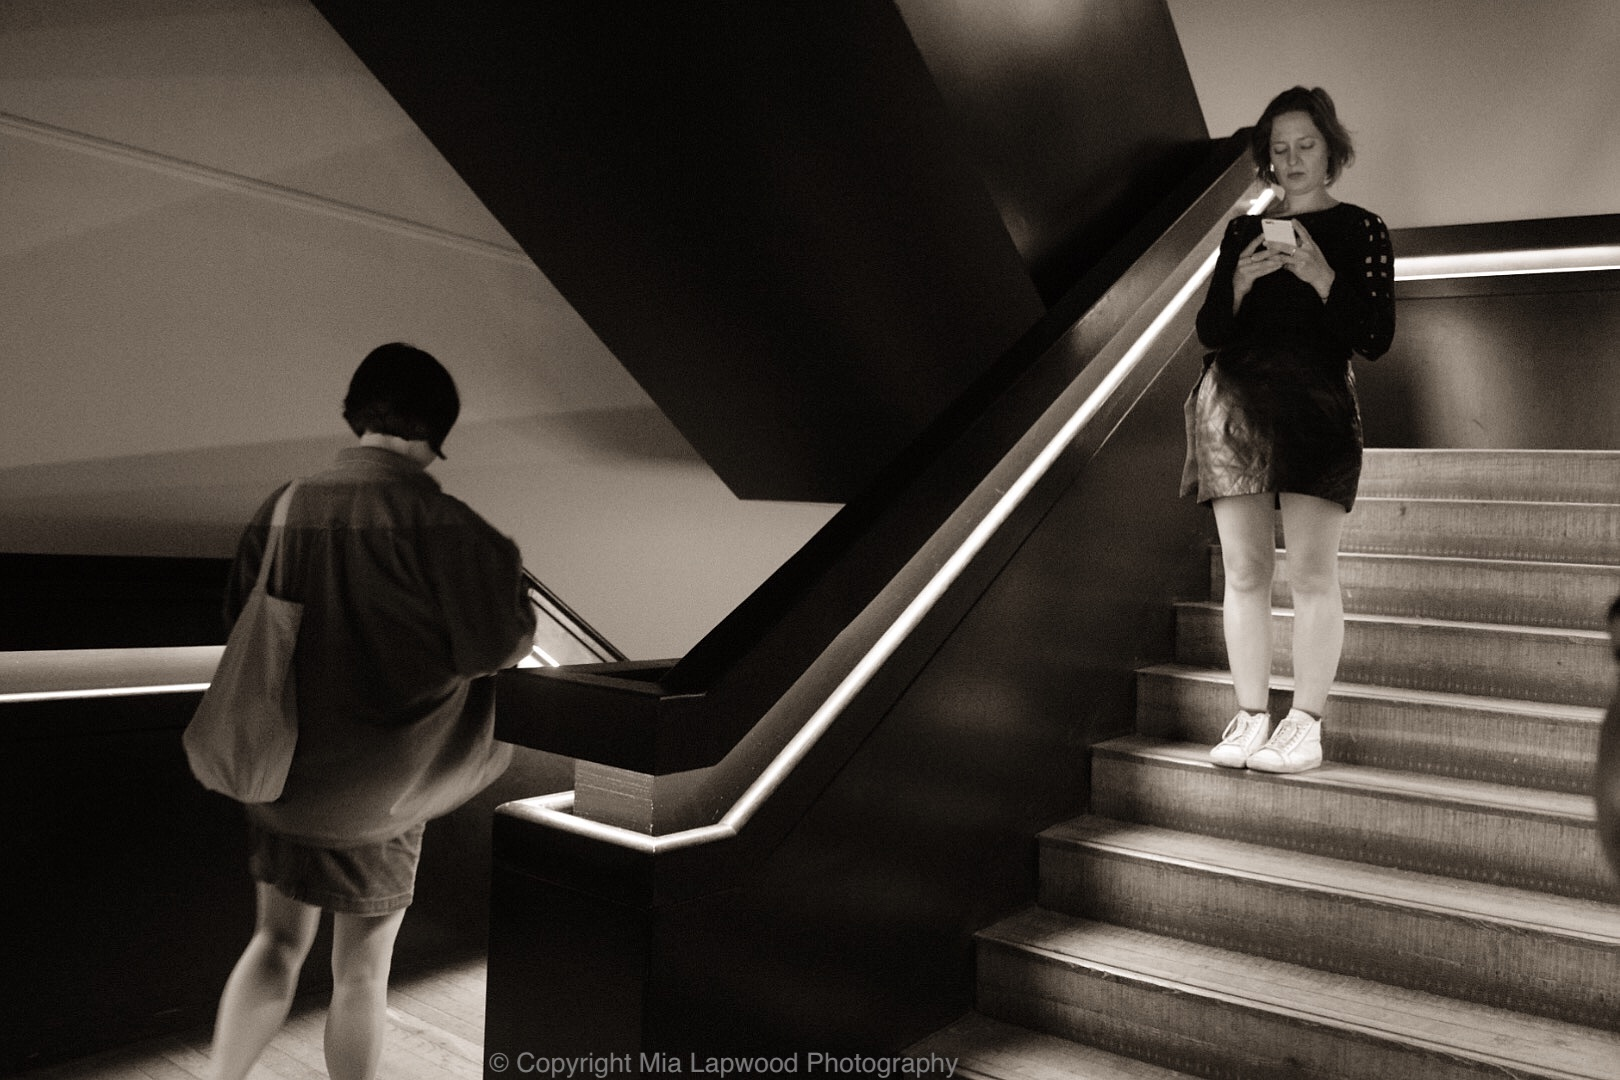 Stairs ppl